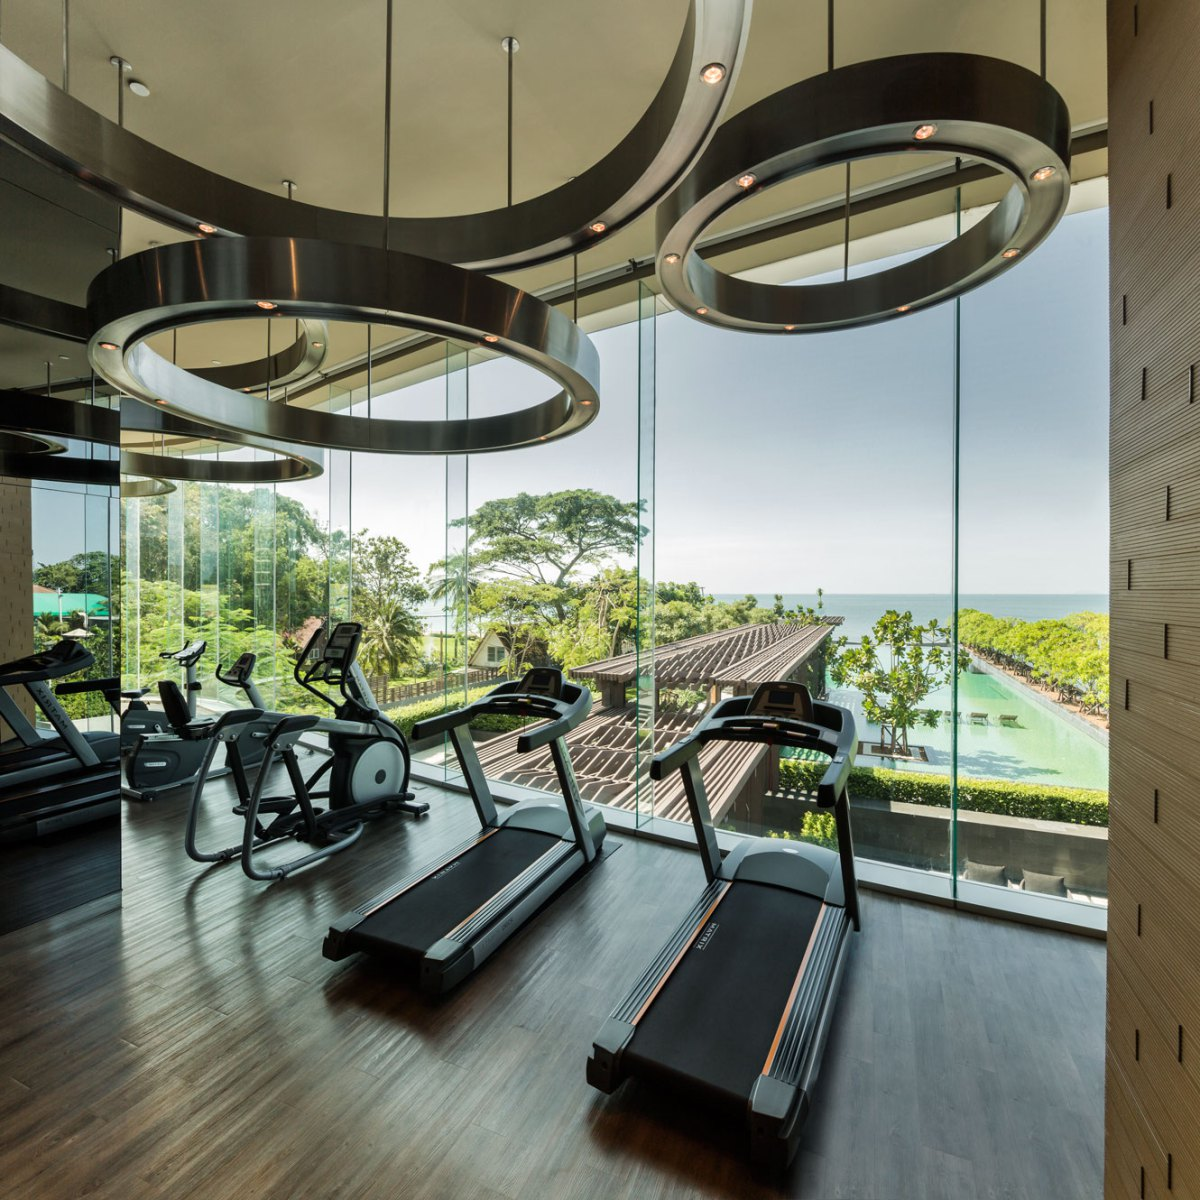 private-gym-design | Interior Design Ideas.